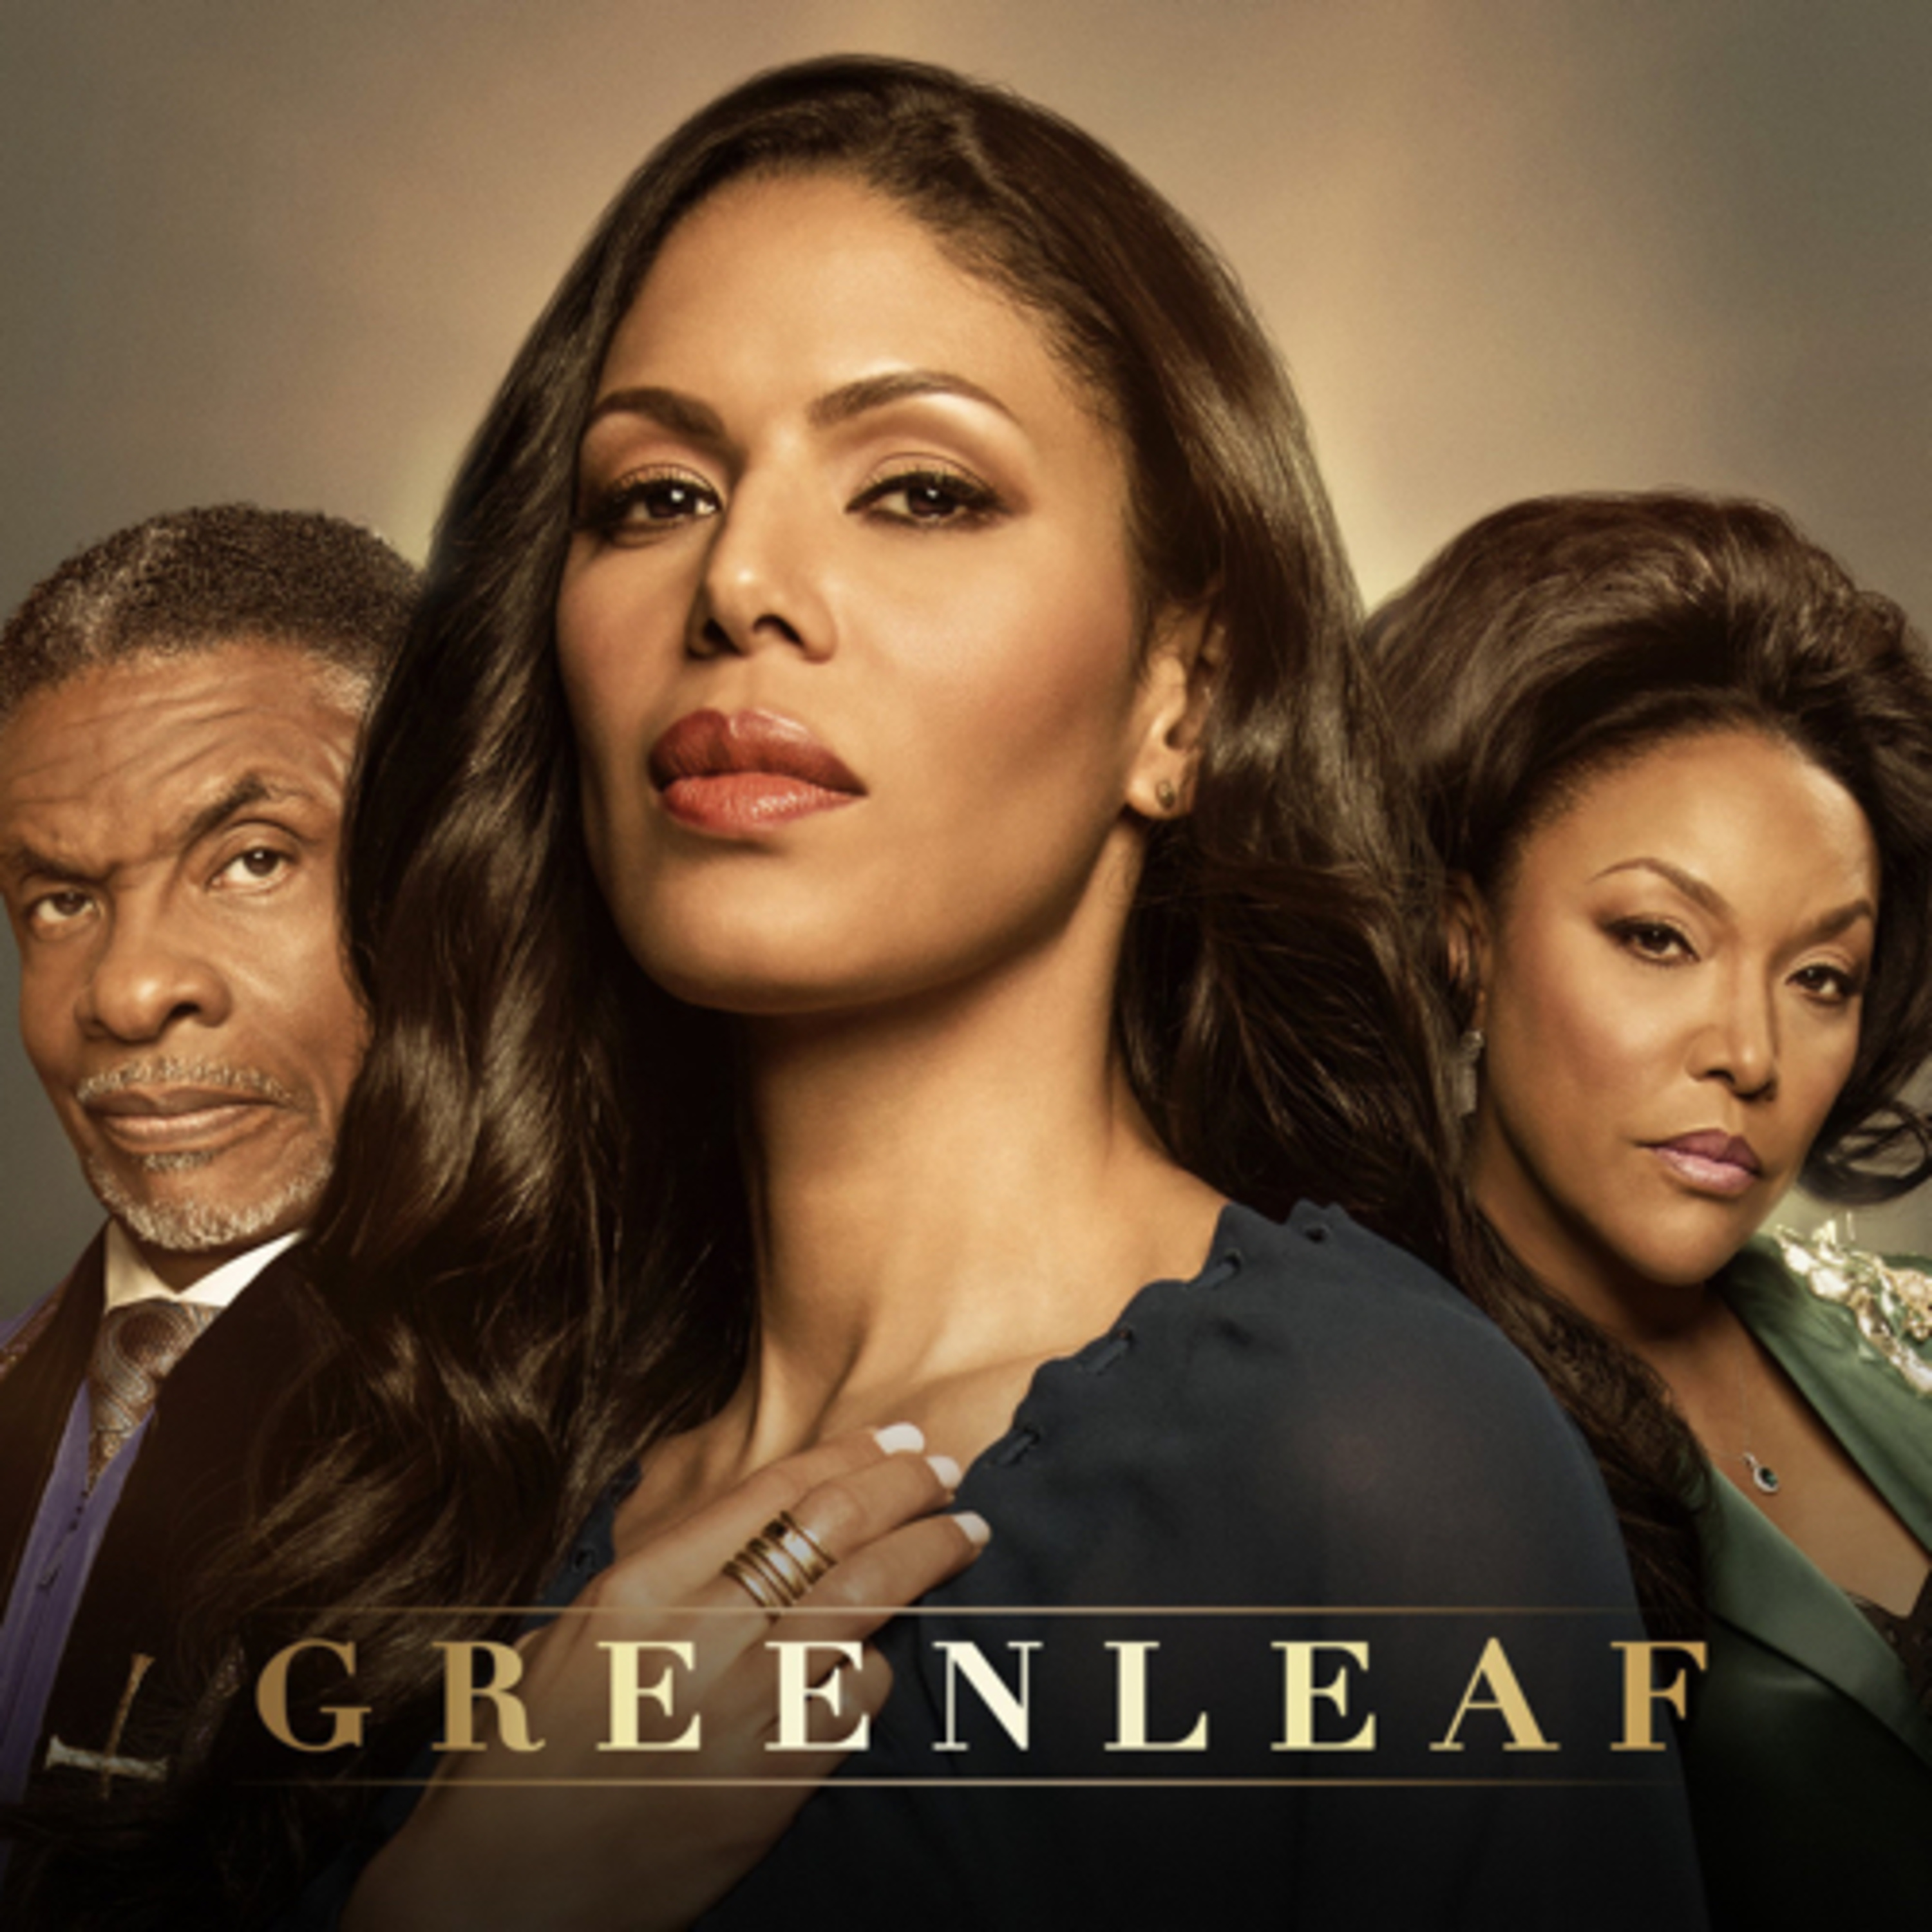 A New Years special! The Greenleaf show review. Watch Now on HULU & NETFLIX!